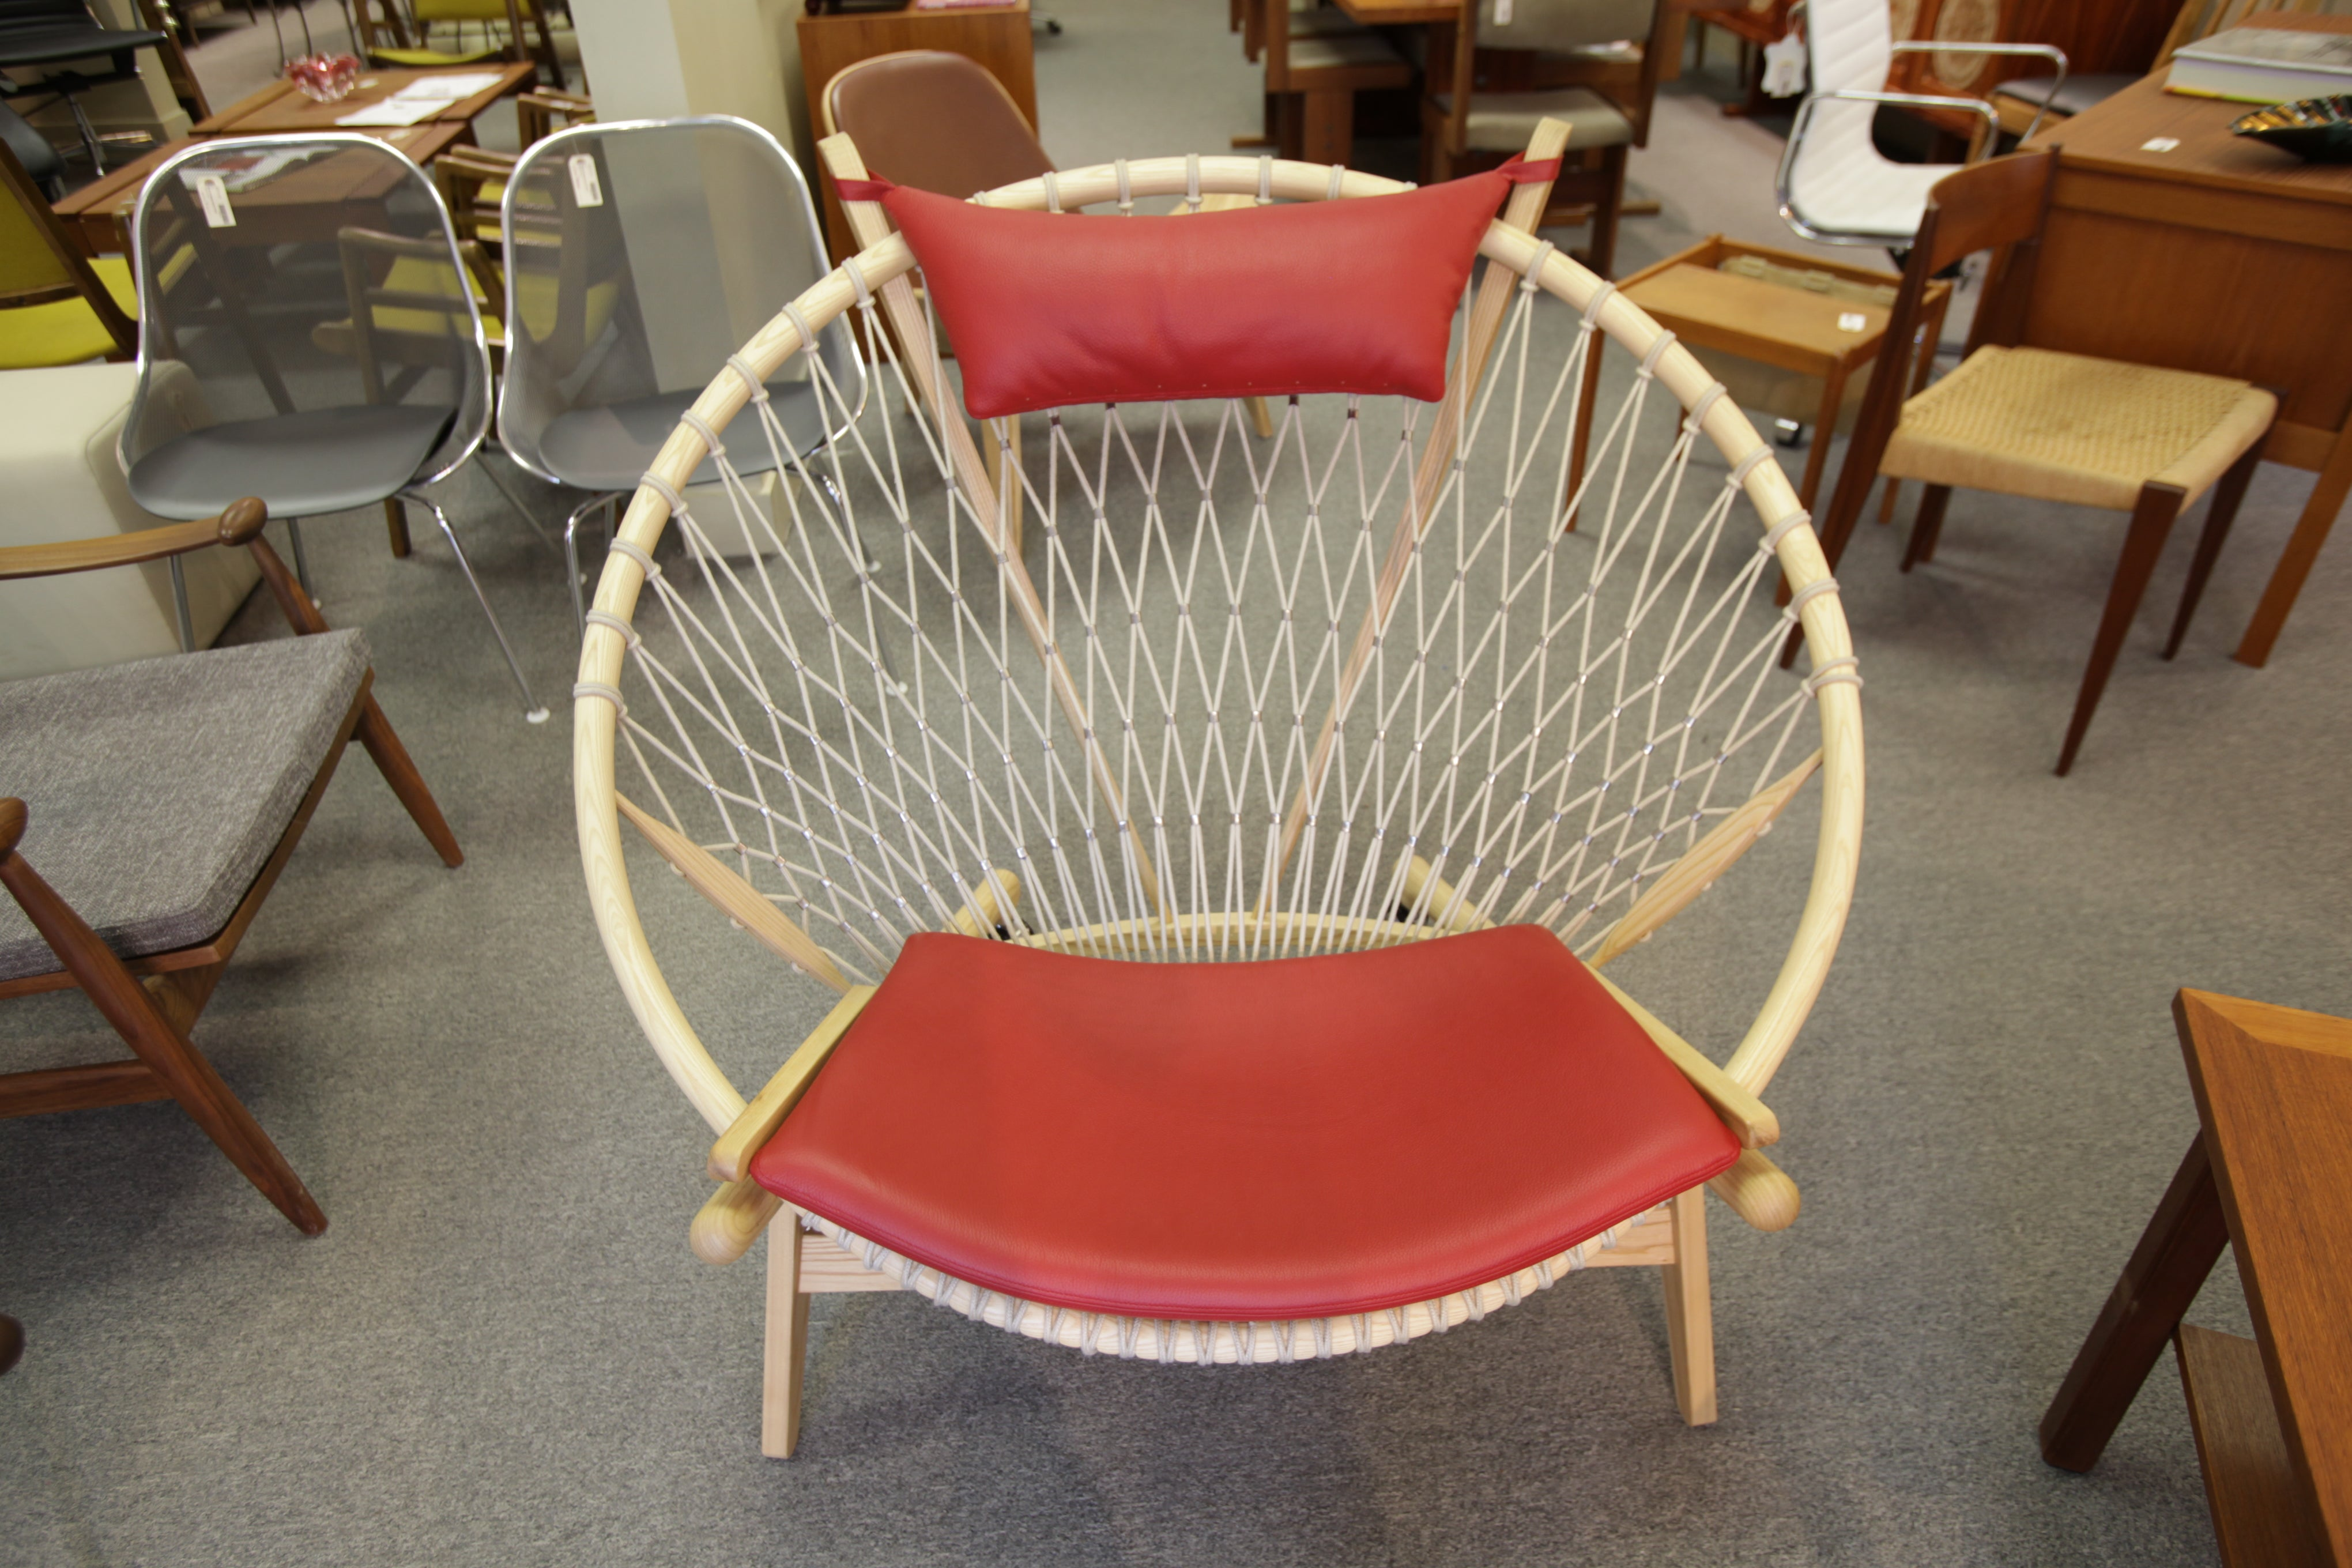 "High Quality Hans Wegner Circle Chair Replica (Red Leather) (45""W x 38""H x 36""D)"